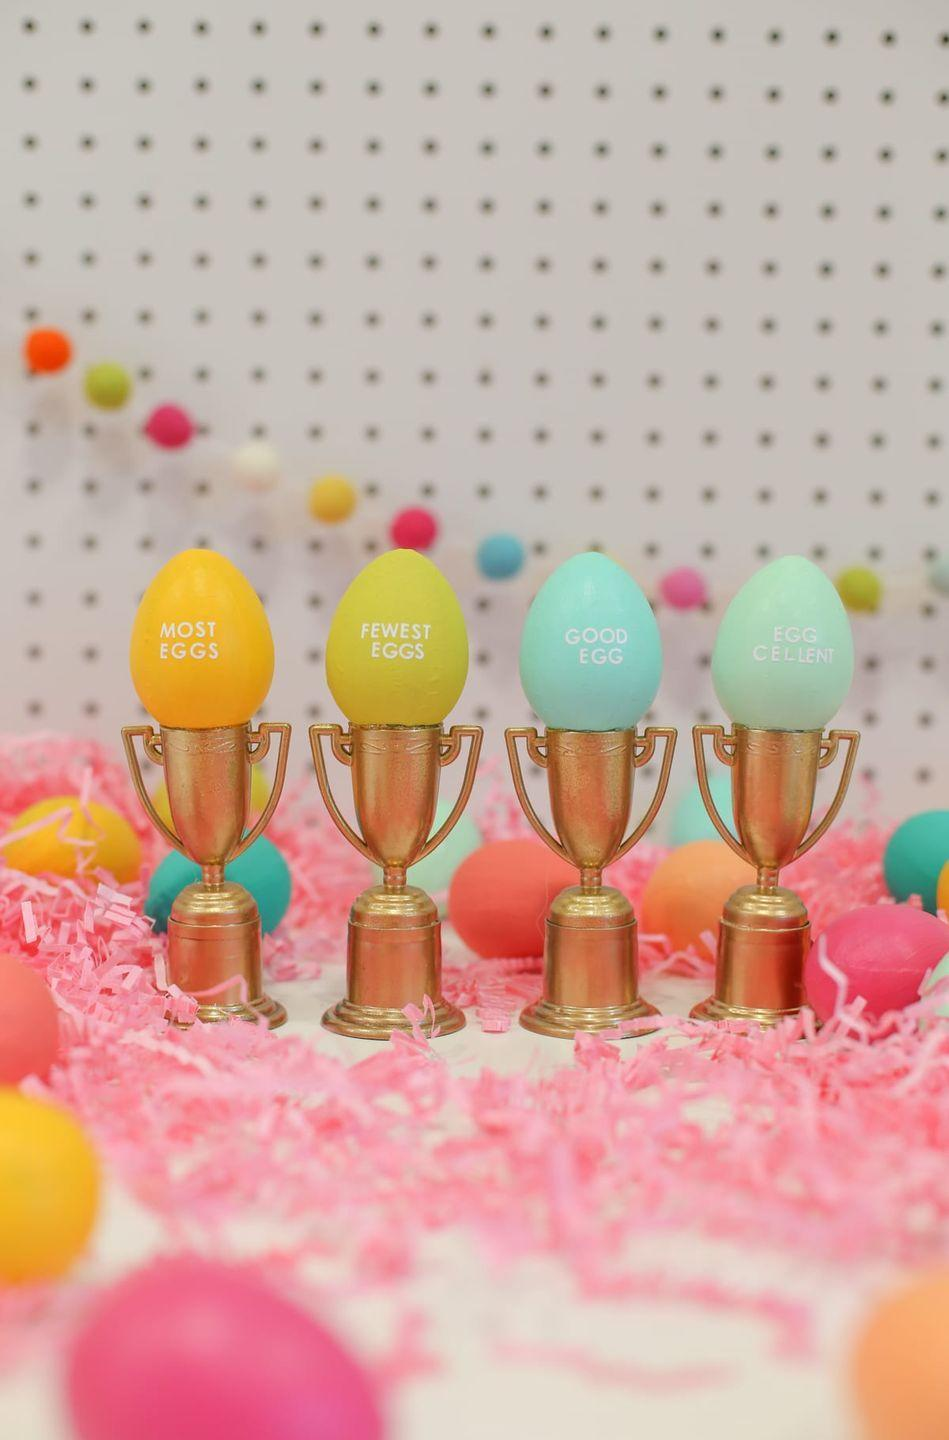 "<p>While the chocolates, trinkets, and coins may be the main draw, everyone will feel like a winner when they're given one of these small (but mighty) trophies that read ""Good Egg,"" ""Most Eggs,"" and more. </p><p><em><a href=""https://lovelyindeed.com/make-these-tiny-trophies-for-your-easter-egg-hunts/"" rel=""nofollow noopener"" target=""_blank"" data-ylk=""slk:Get the tutorial at Lovely Indeed »"" class=""link rapid-noclick-resp"">Get the tutorial at Lovely Indeed »</a></em></p><p><strong>RELATED: </strong><a href=""https://www.goodhousekeeping.com/holidays/easter-ideas/a26754736/best-easter-egg-hunt-nyc/"" rel=""nofollow noopener"" target=""_blank"" data-ylk=""slk:The Best Easter Egg Hunts Near You"" class=""link rapid-noclick-resp"">The Best Easter Egg Hunts Near You</a><br></p>"